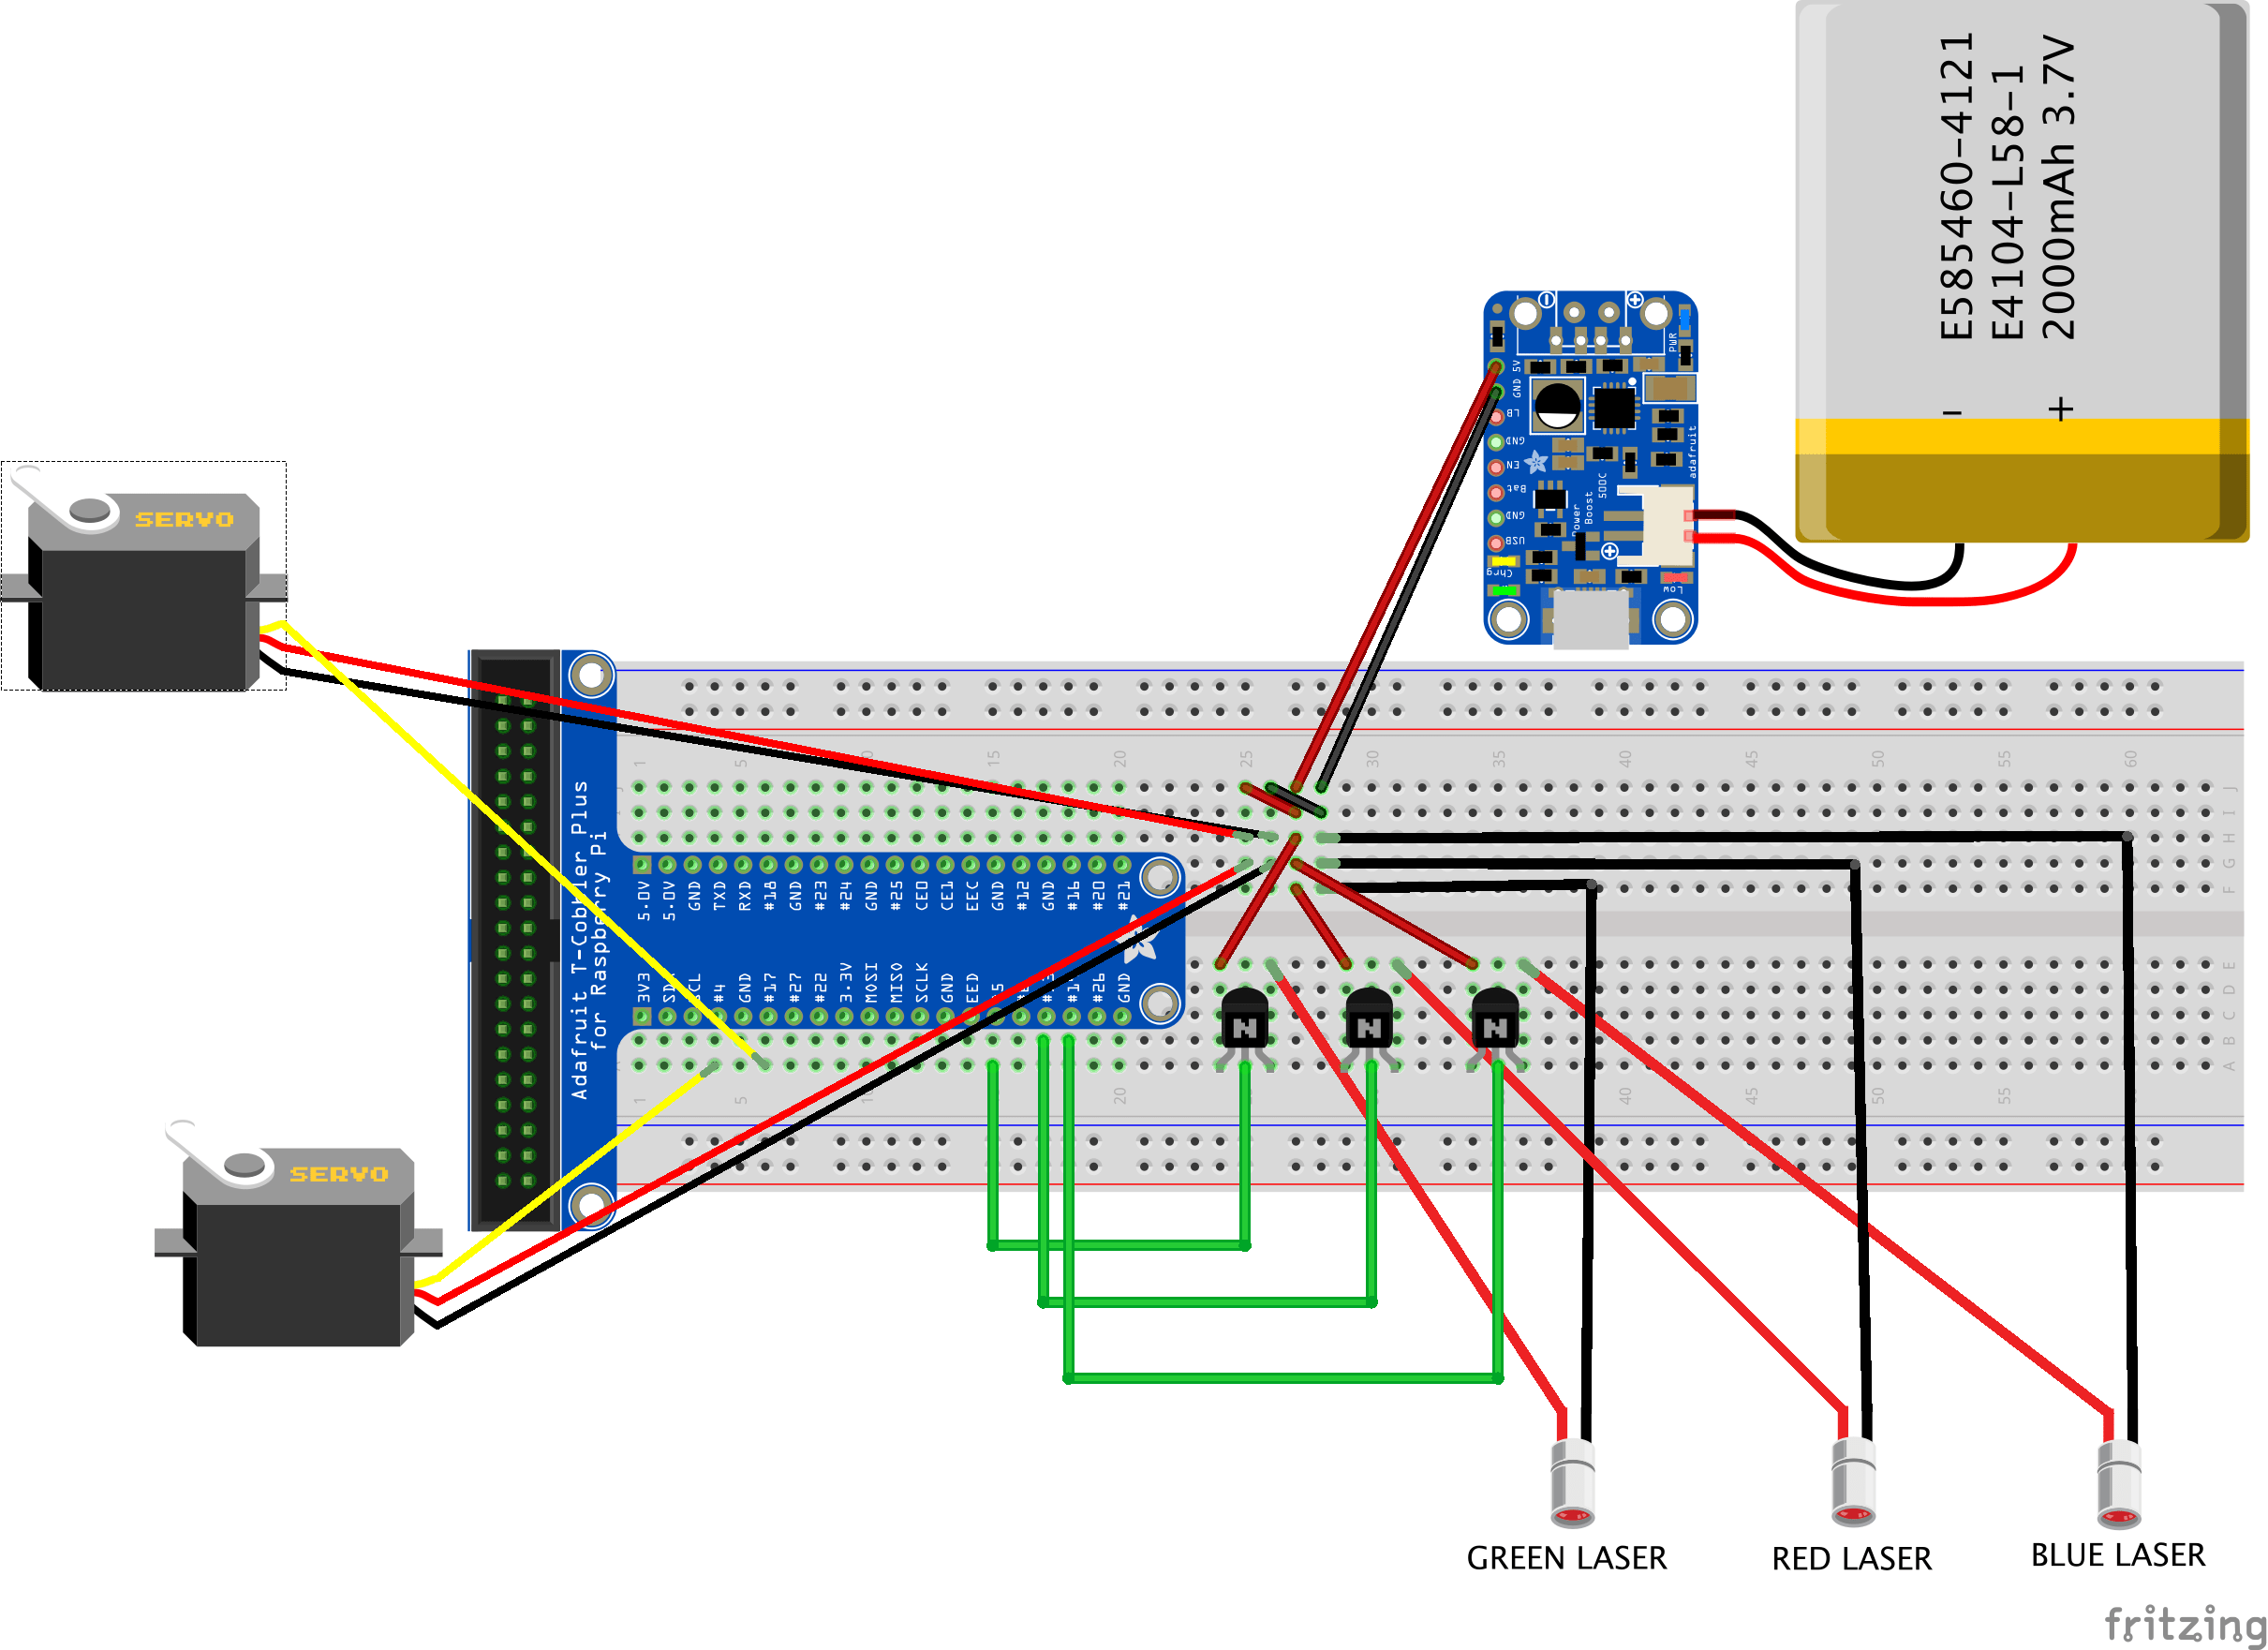 1w blue laser diagram 1999 ford mustang fuel pump wiring maserfire py  fire lasers with transistors and python on